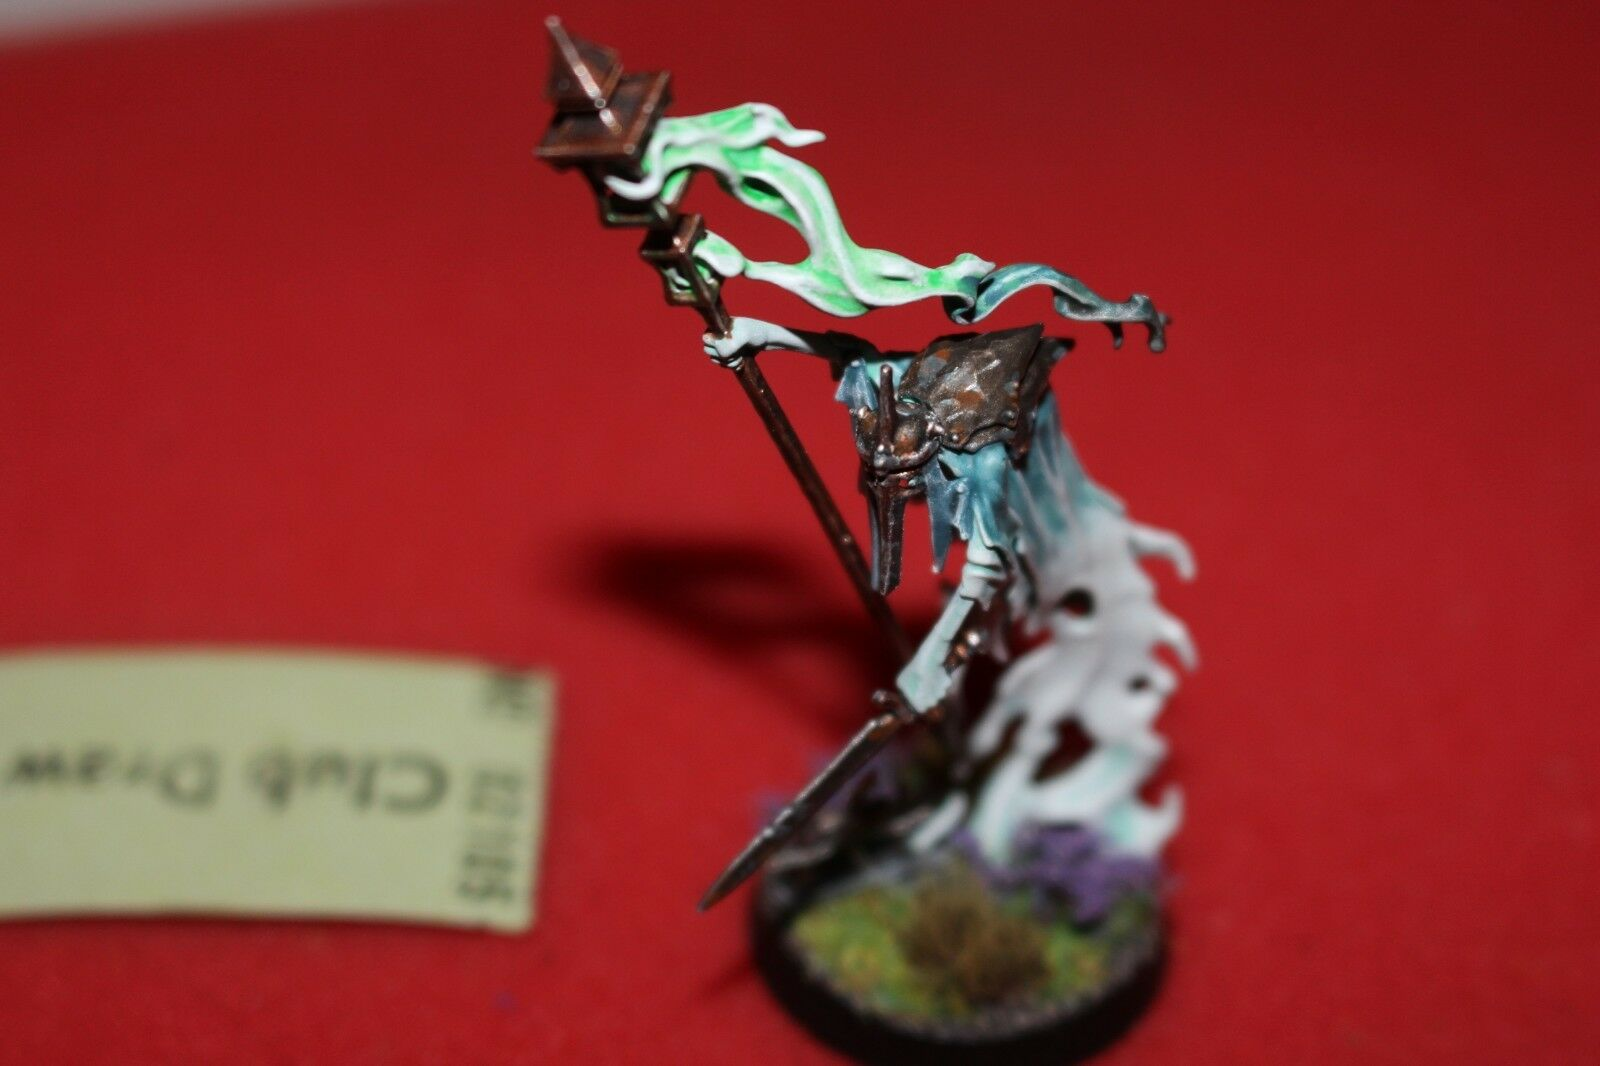 Games Workshop Warhammer Nighthaunt Guardian of Souls Pro Painted GW Undead Mint